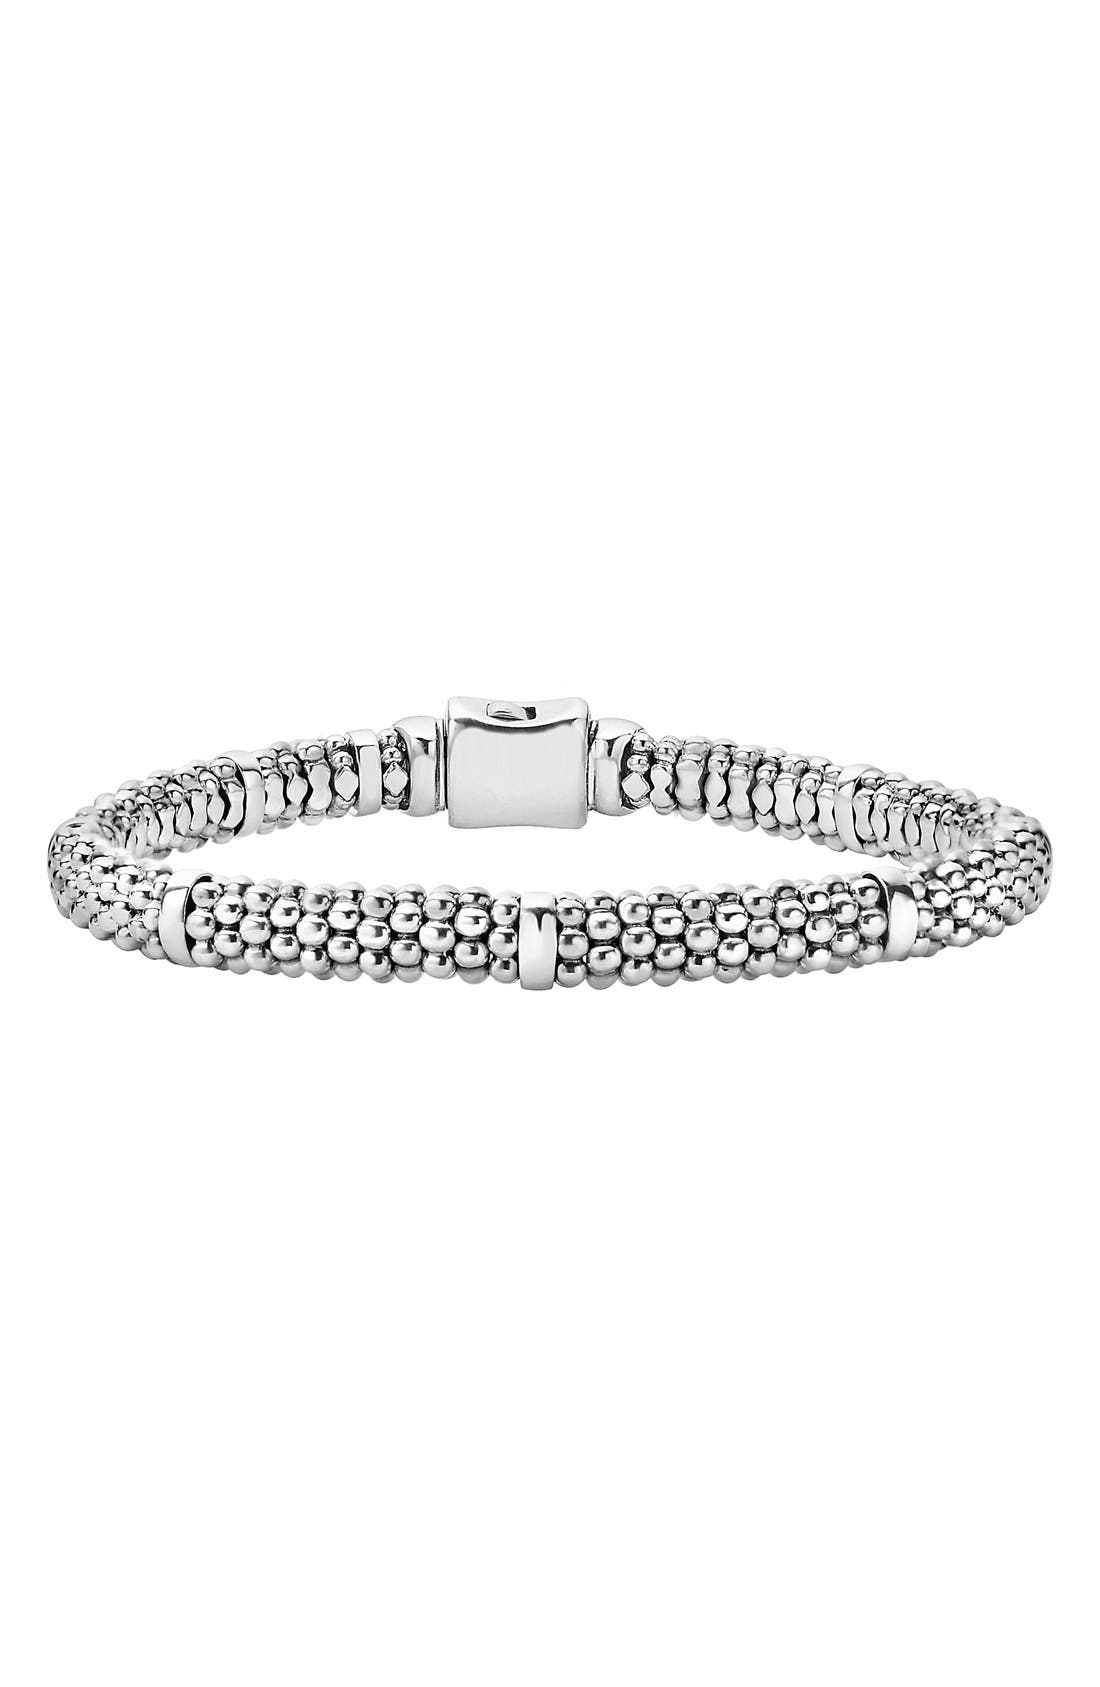 Caviar Rope Station Bracelet,                         Main,                         color, Sterling Silver